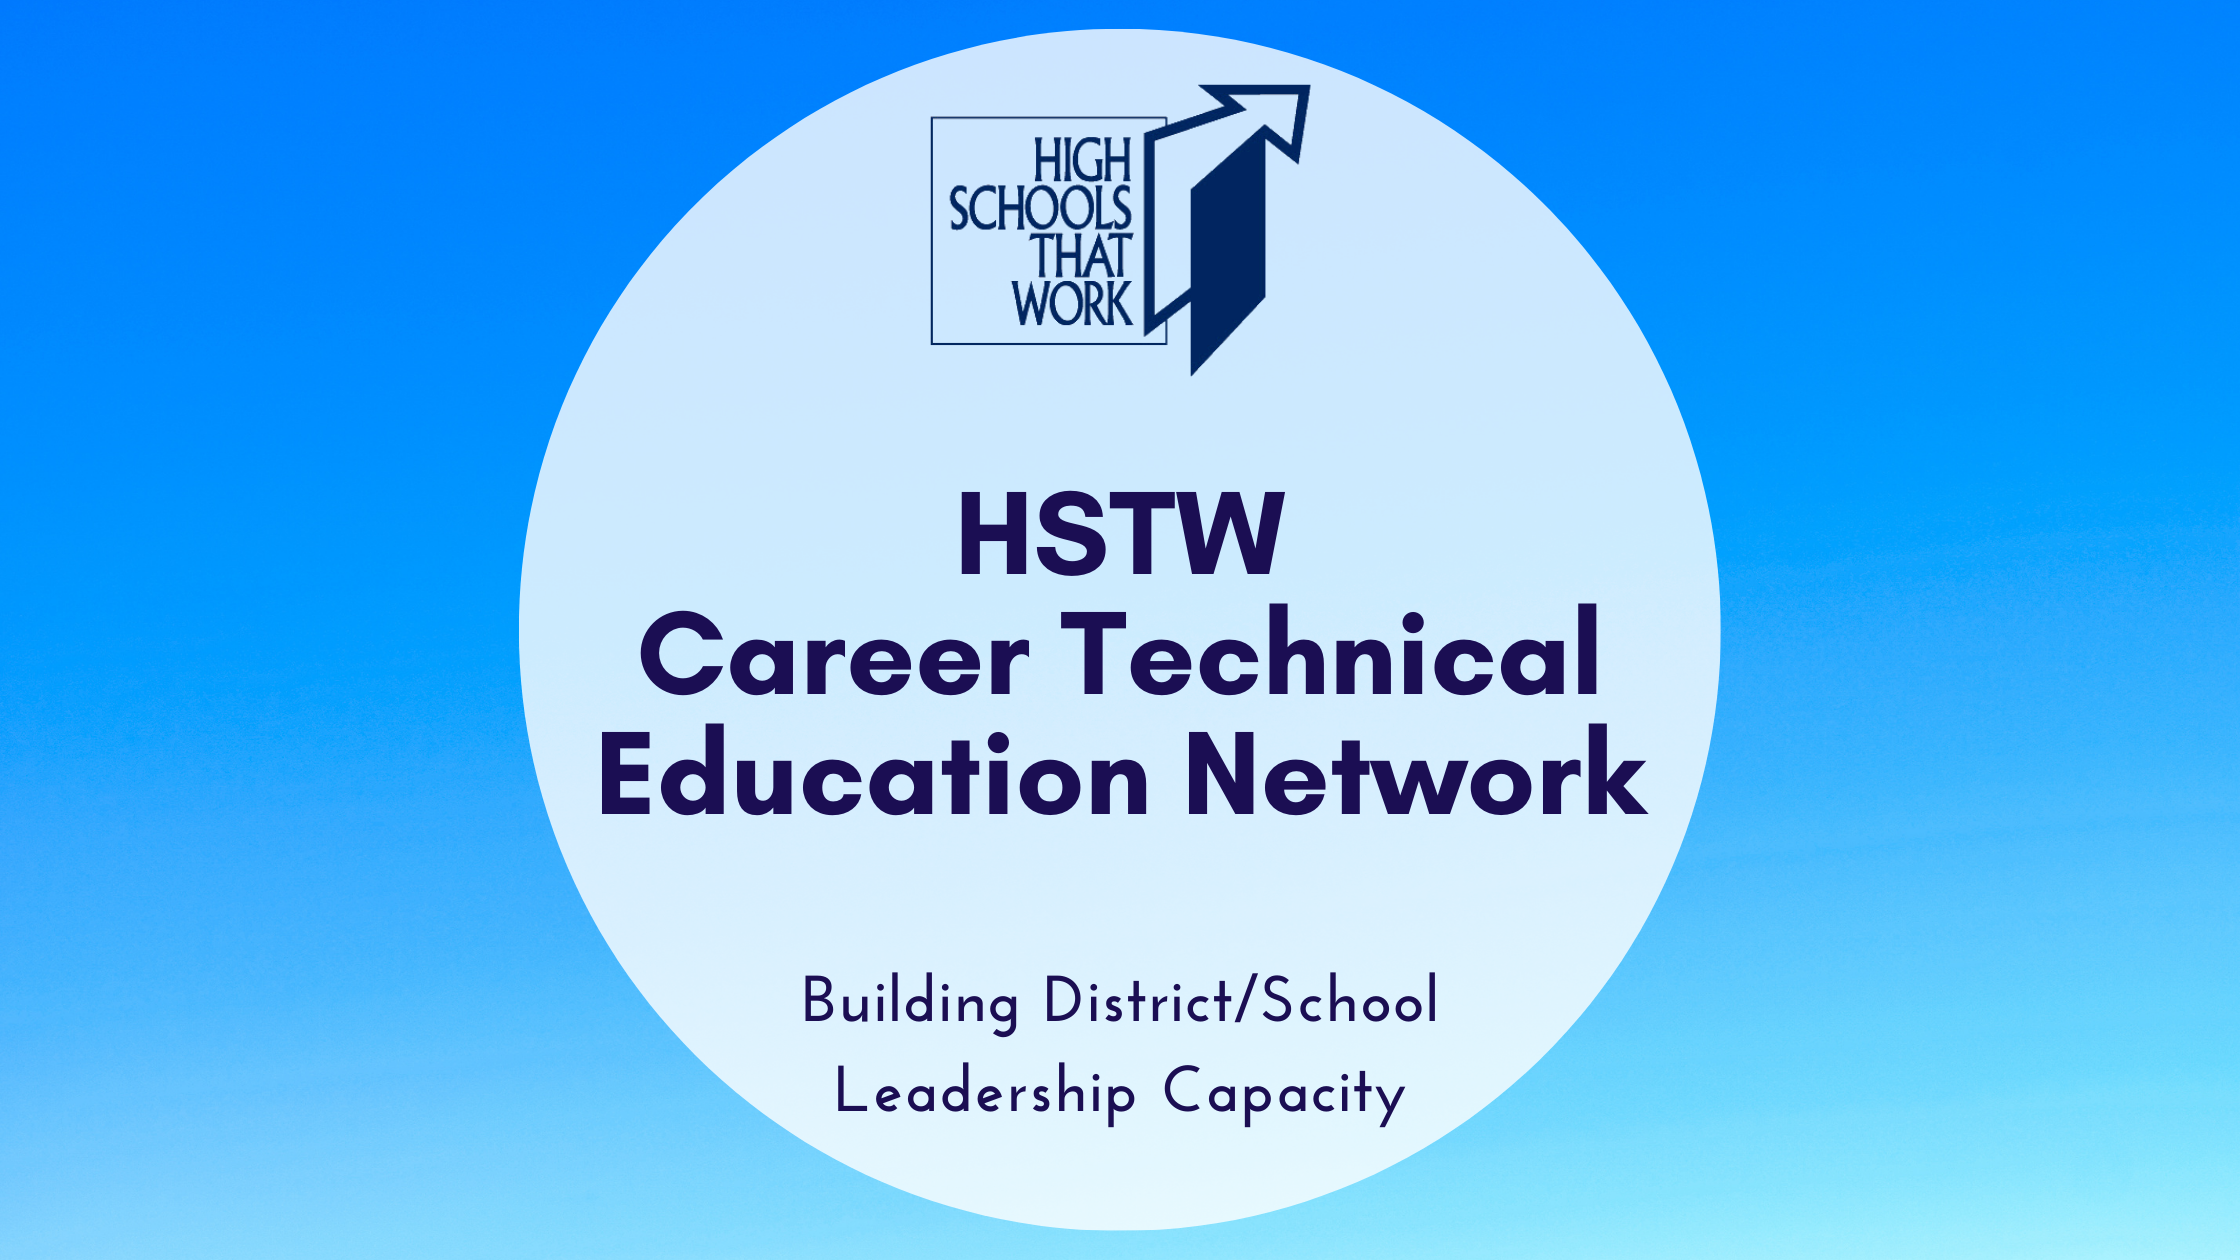 HSTW Career Technical Education Network